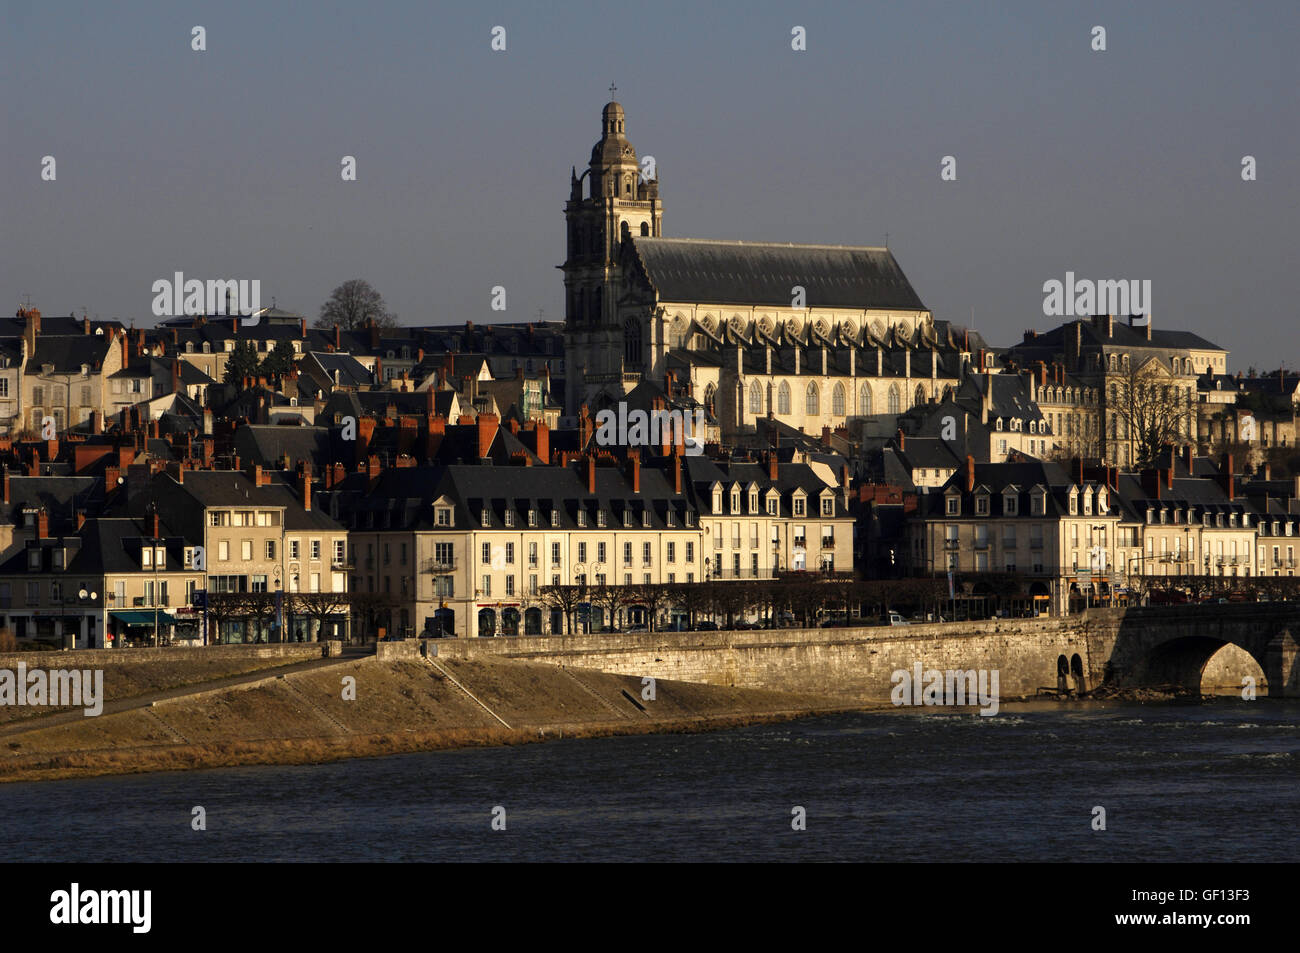 France. Blois. Cityscape with the Saint Louis cathedral built in 18th century and Jacques Gabriel bridge over the - Stock Image